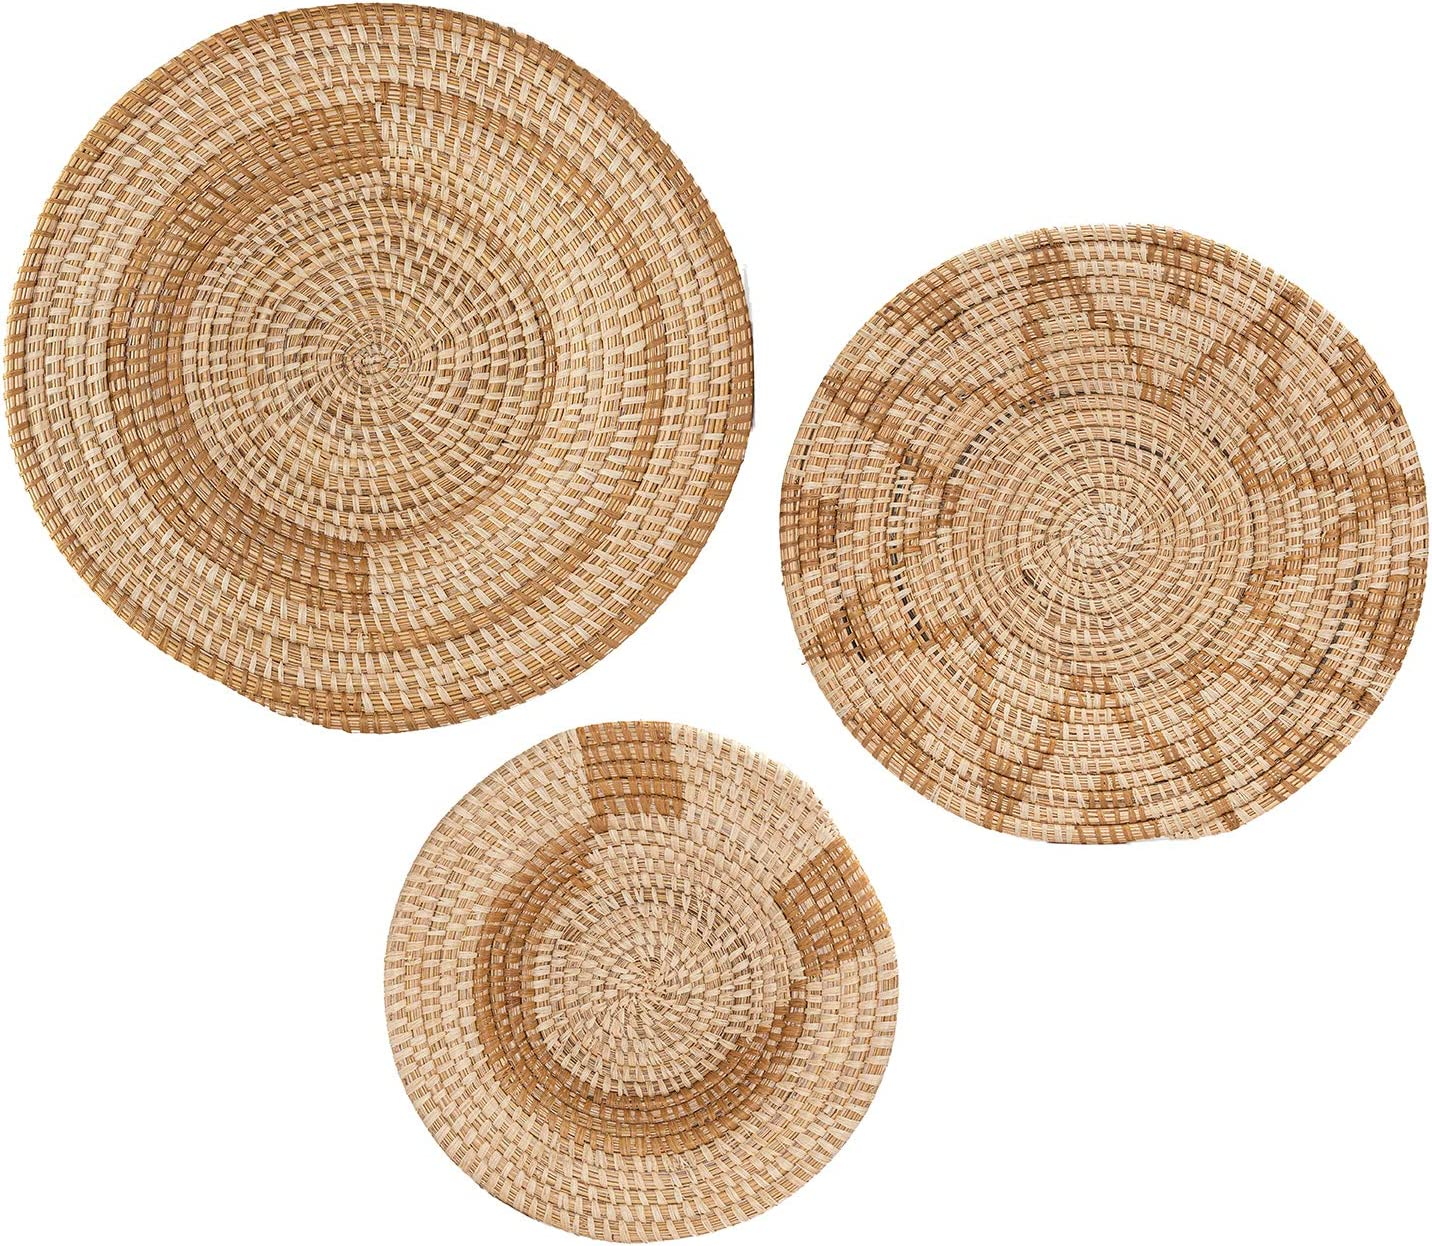 All Across Africa Wall Plate Set of 3, Boho Wall Decor, Natural Raffia Hanging Woven Wall Basket Decor with Easy Hang Loops - Butterum, Tan